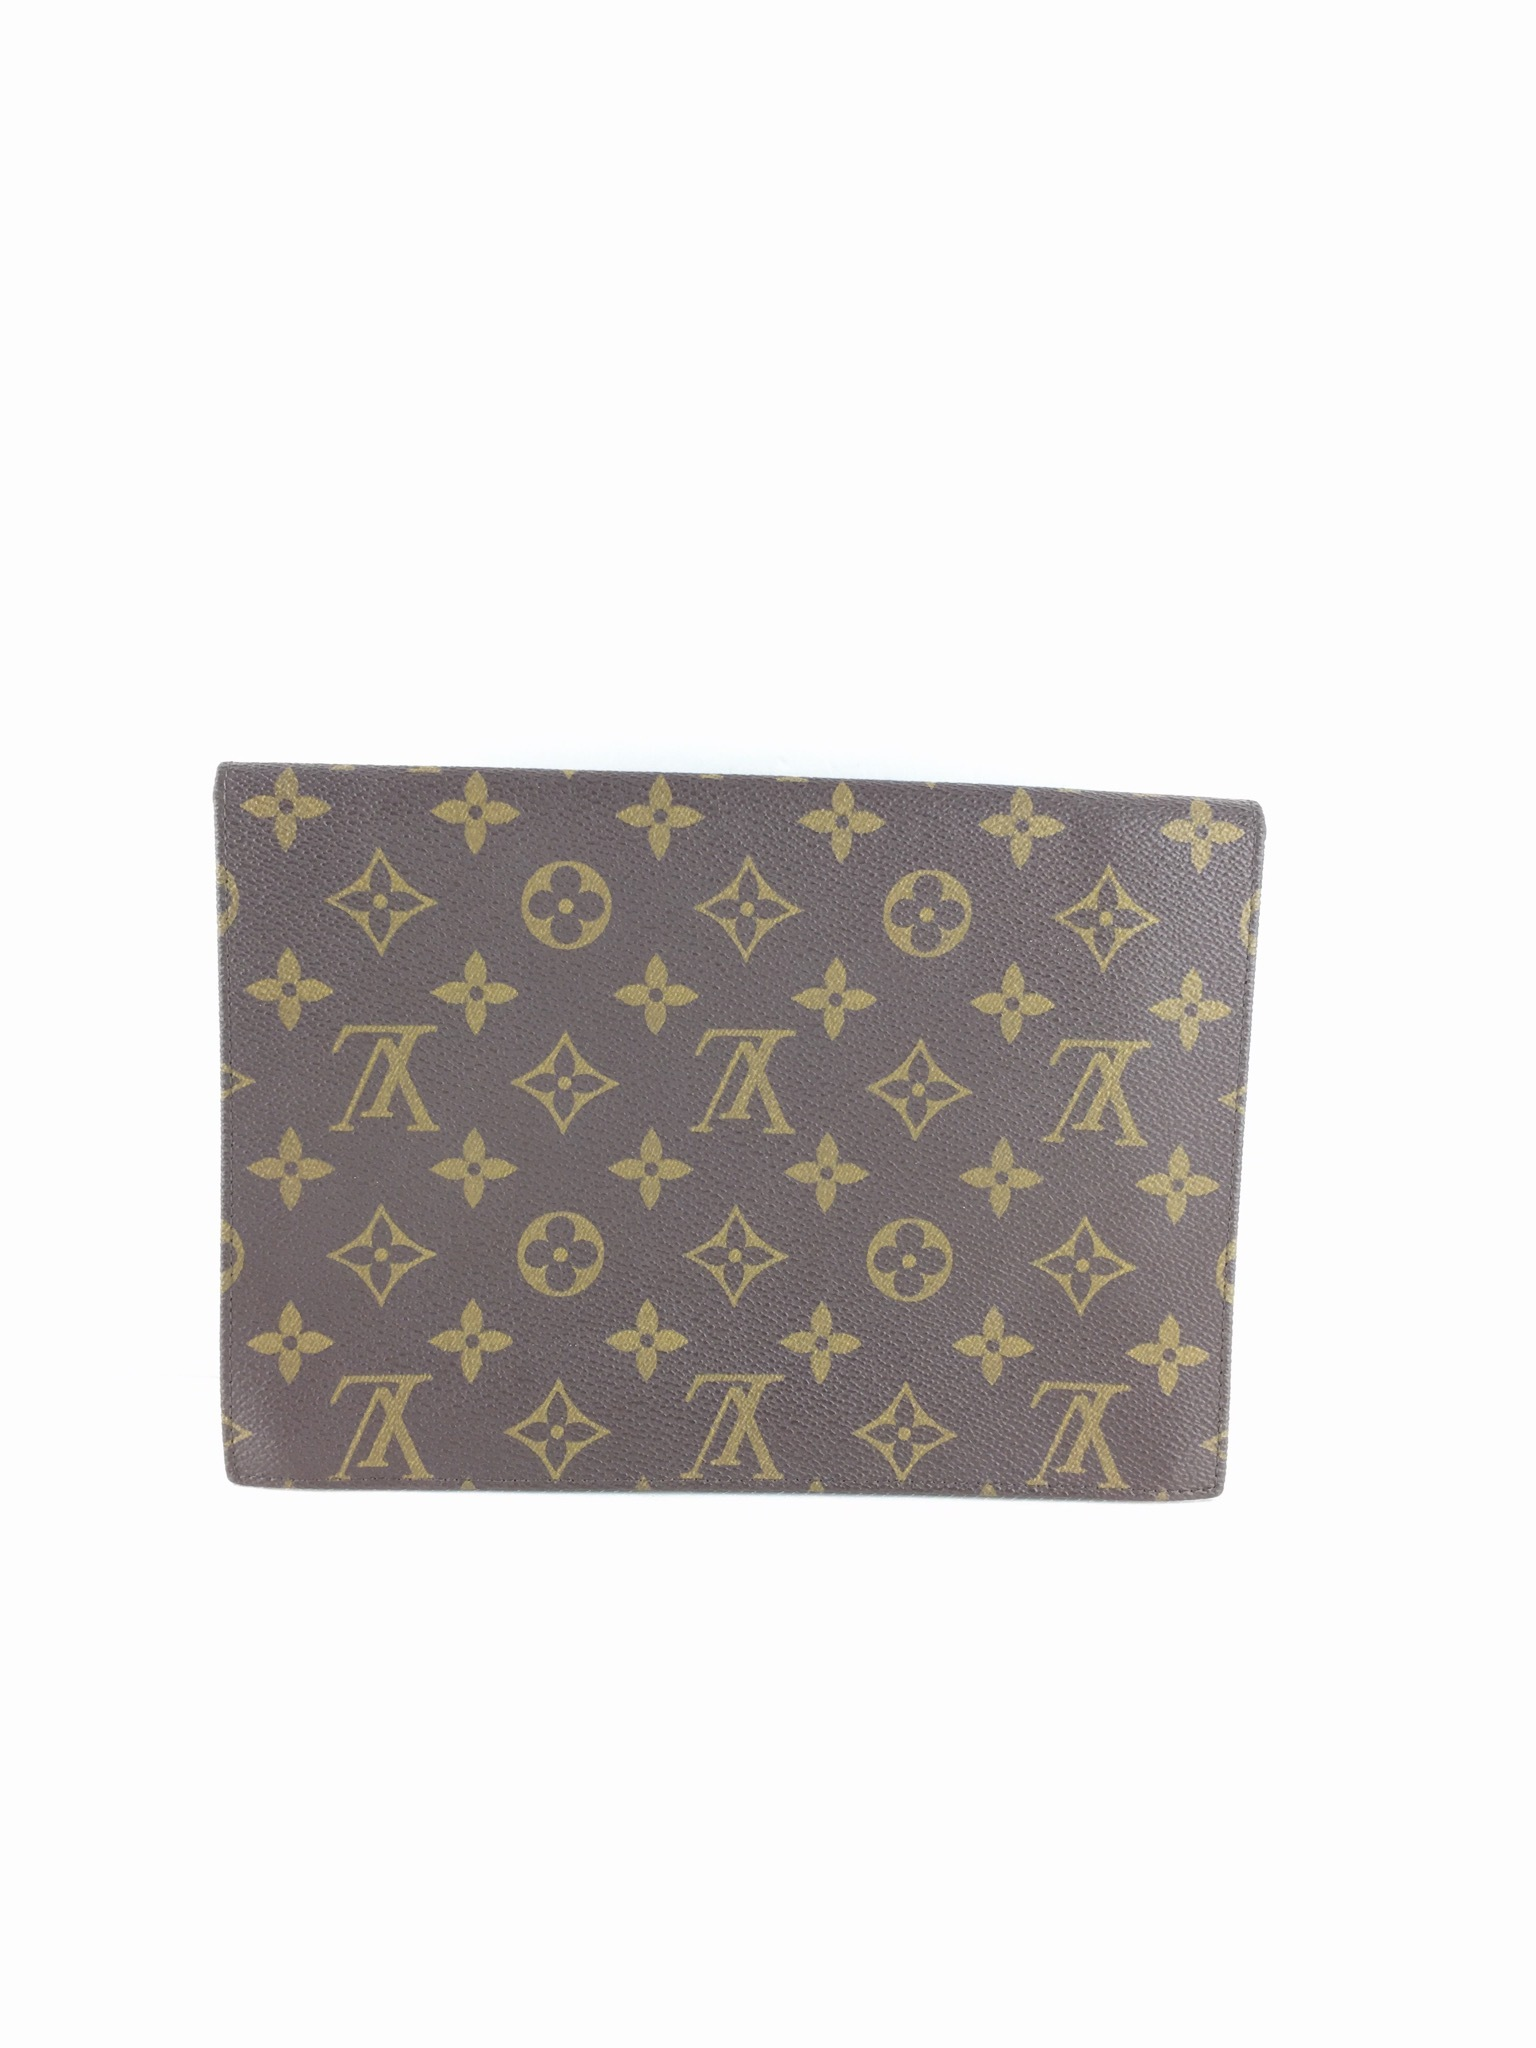 8926259397f3 Details about Authentic Louis Vuitton Monogram Pochette rabat 23 Clutch Bag  M51940